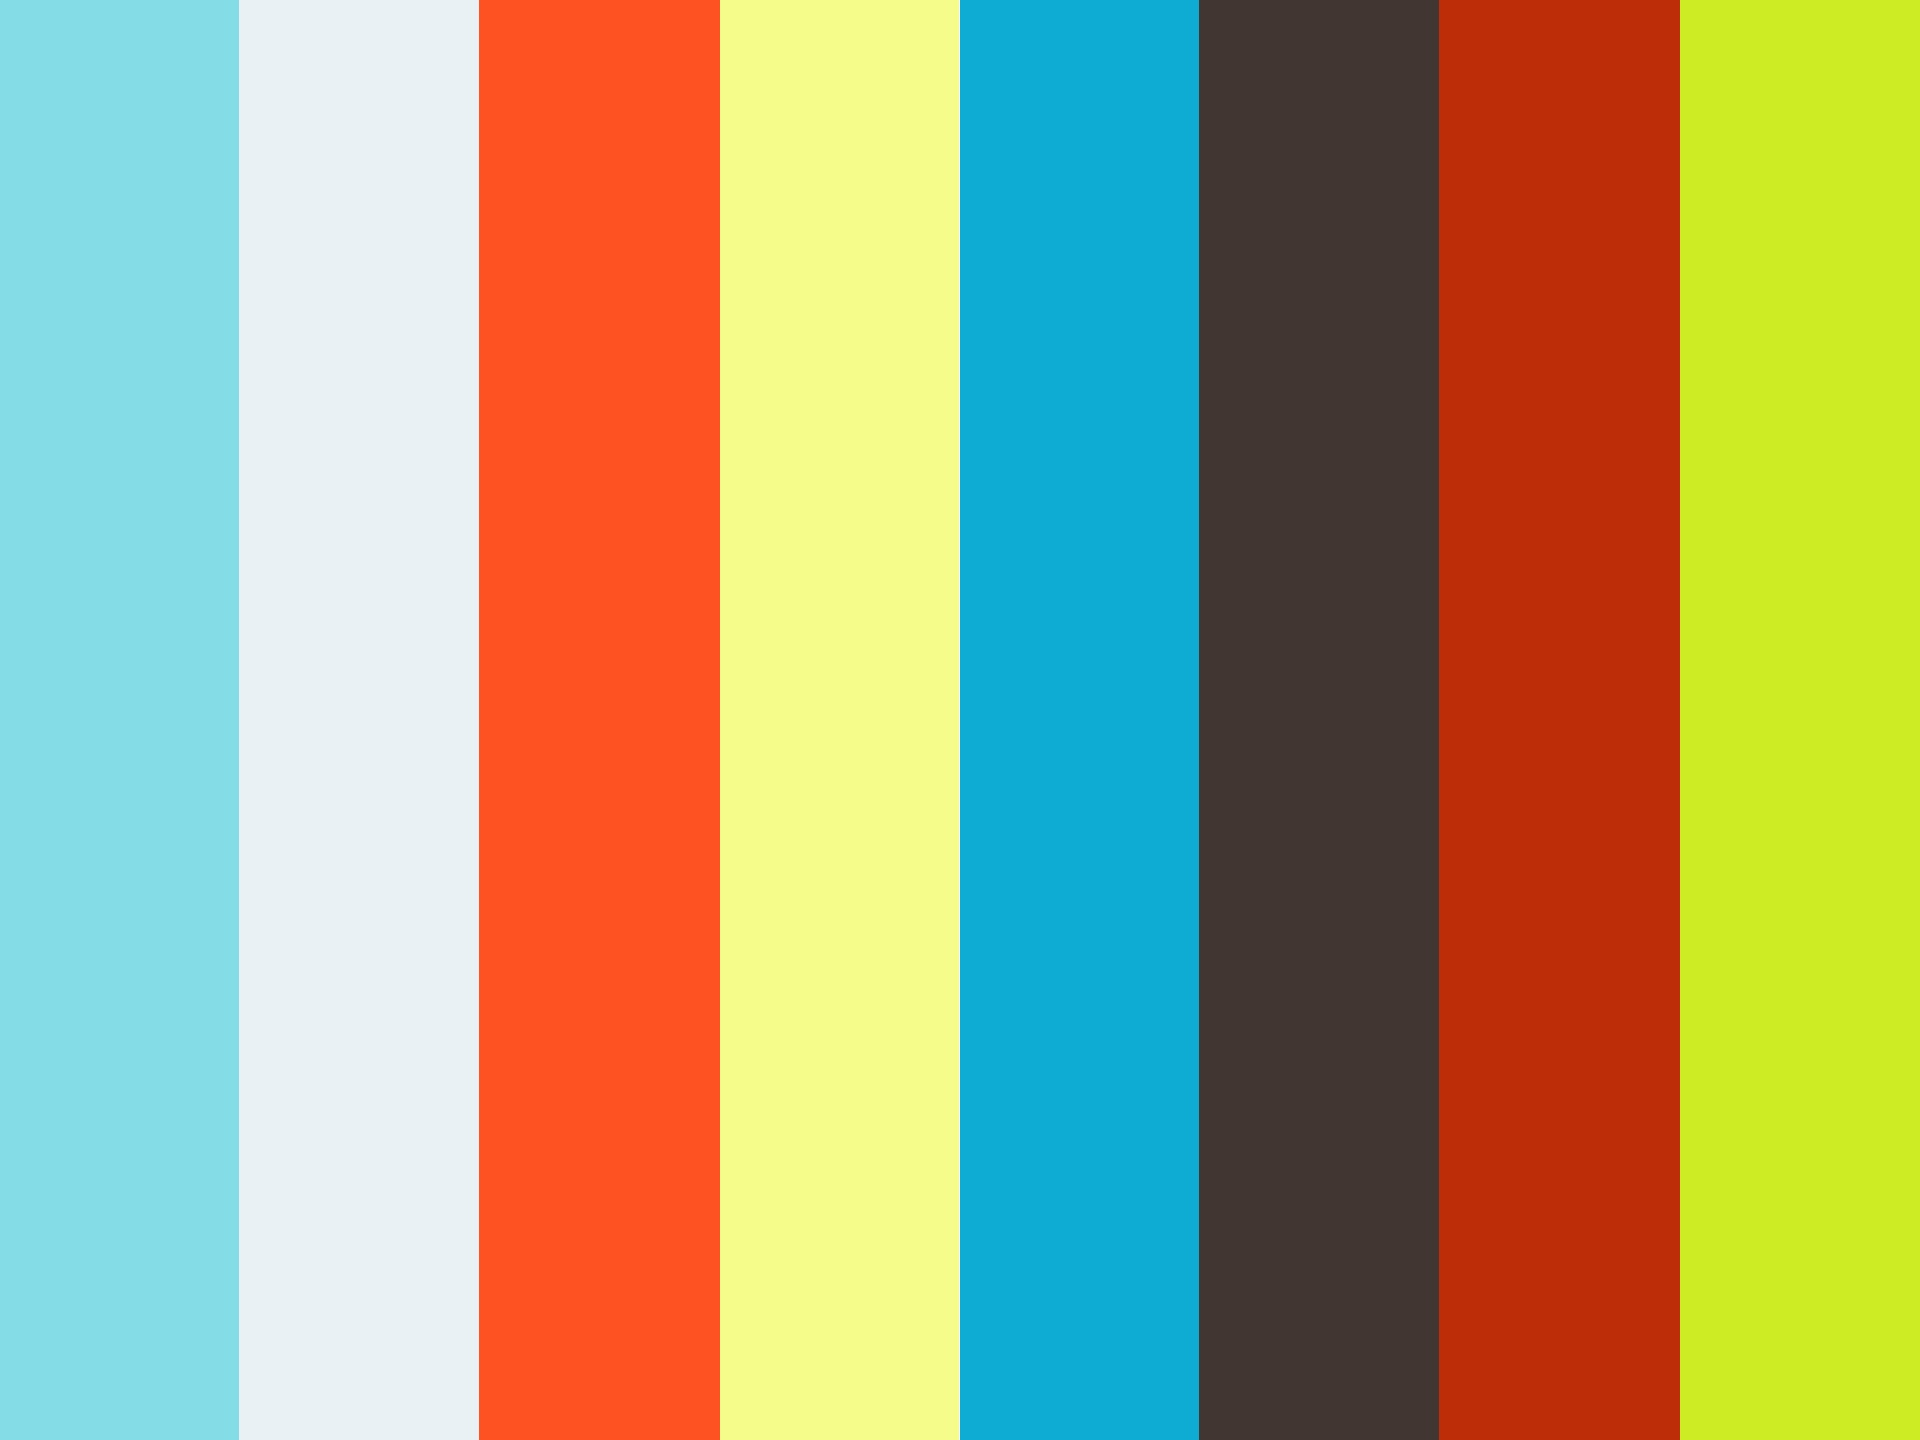 Electric Vs Gas Stove.100 Gas Vs Electric Cooktop Kitchen ...